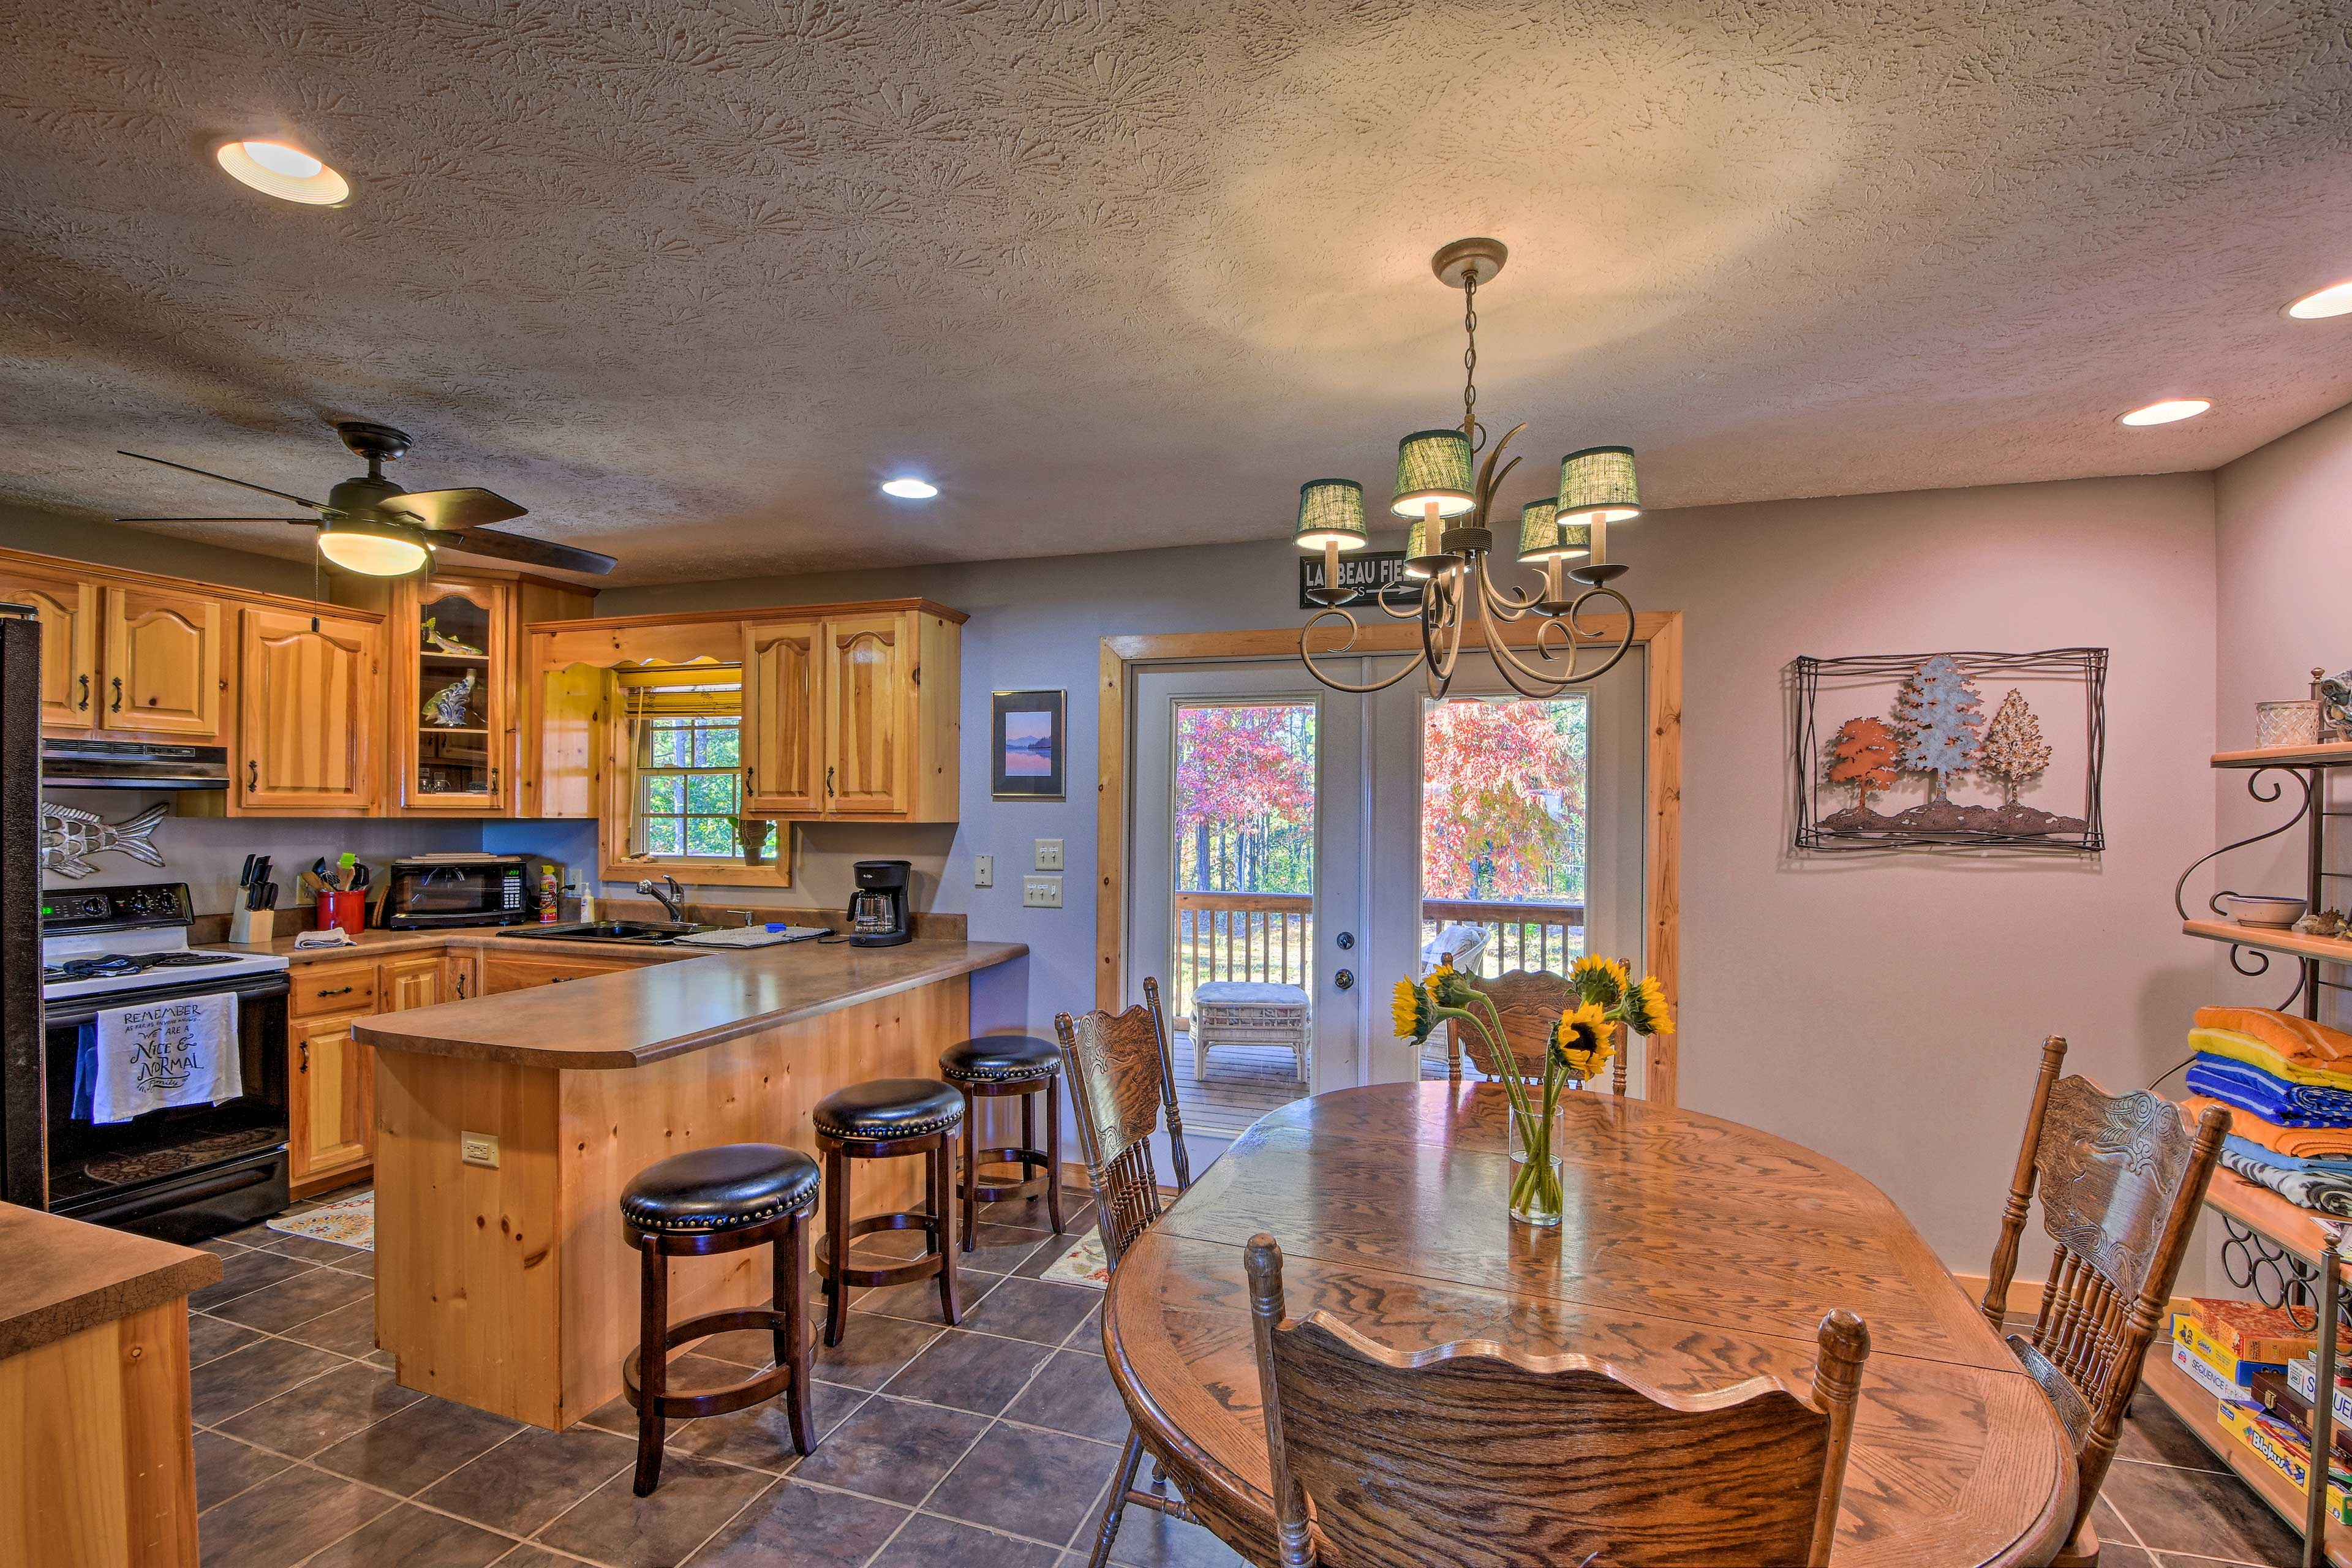 The kitchen features an open space for entertainment.